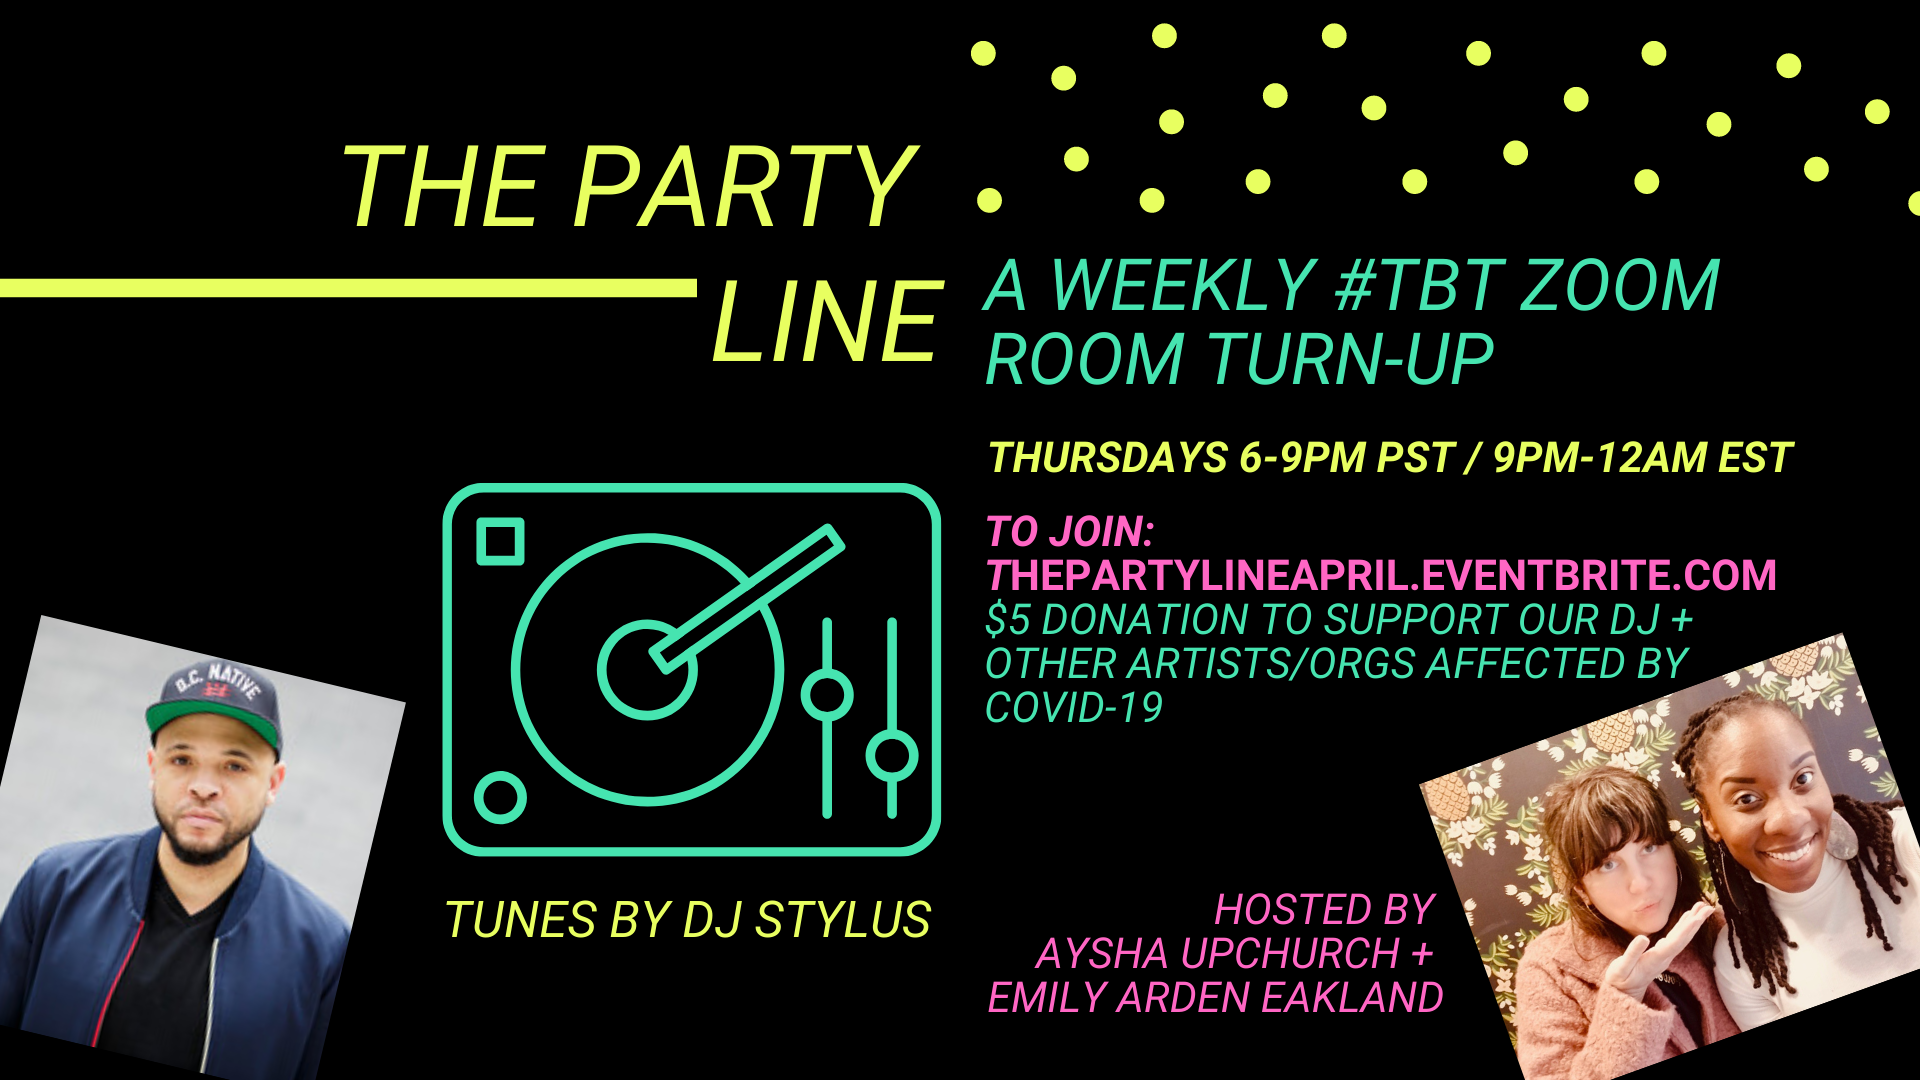 Party Line in the Zoom Room featuring DJ Stylus - The Vibe Conductor